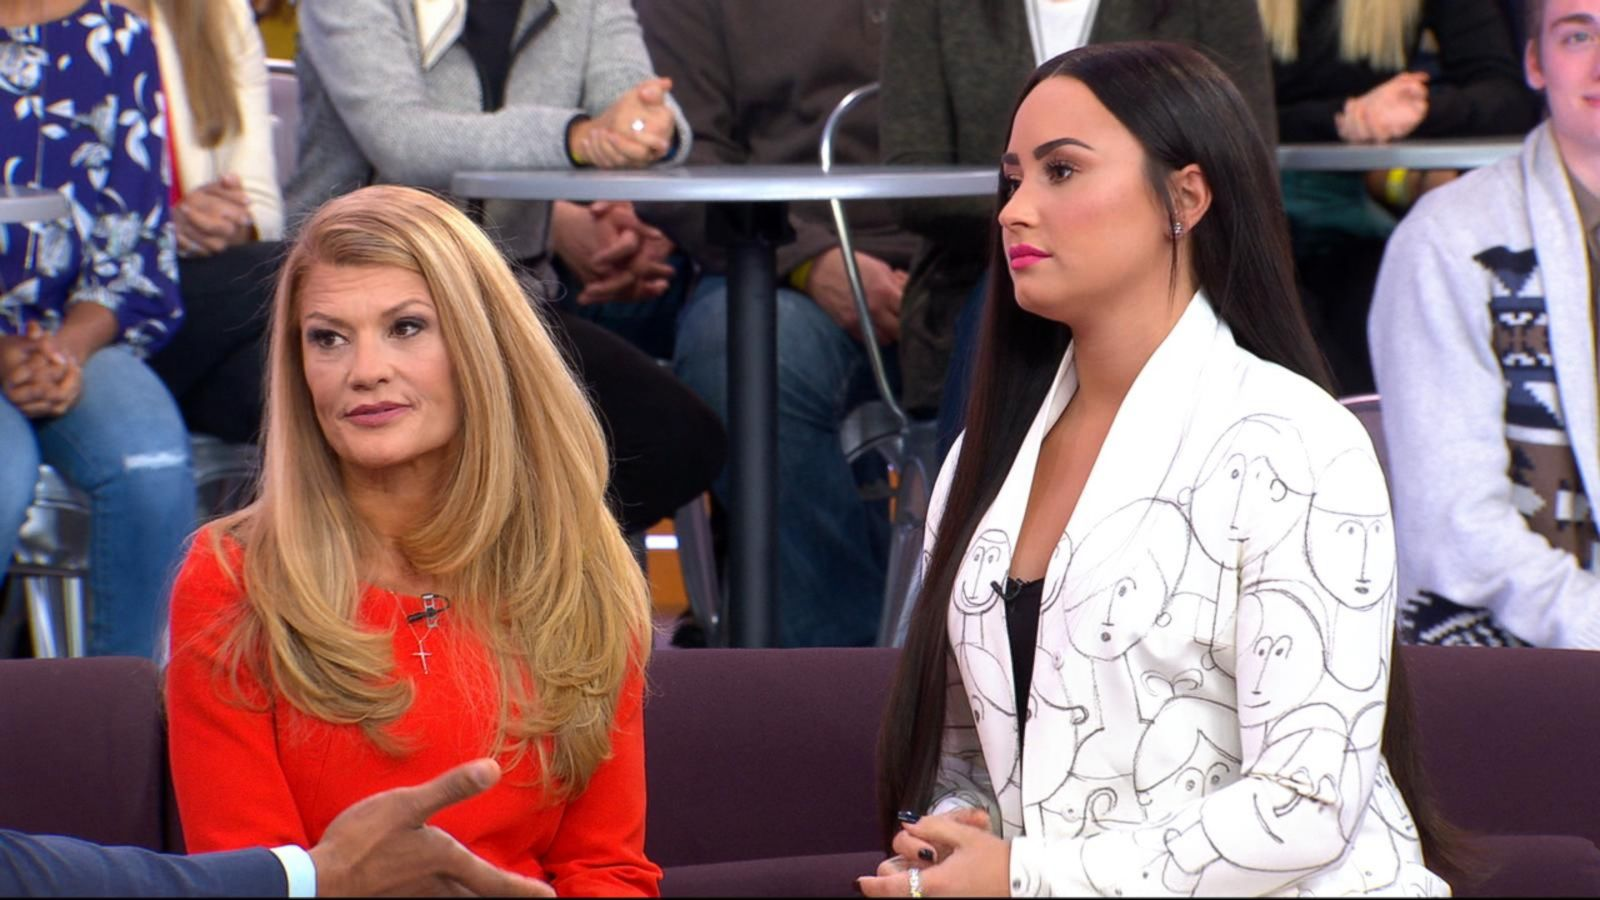 Demi Lovato Inspired Her Mom To Seek Treatment For Substance Abuse